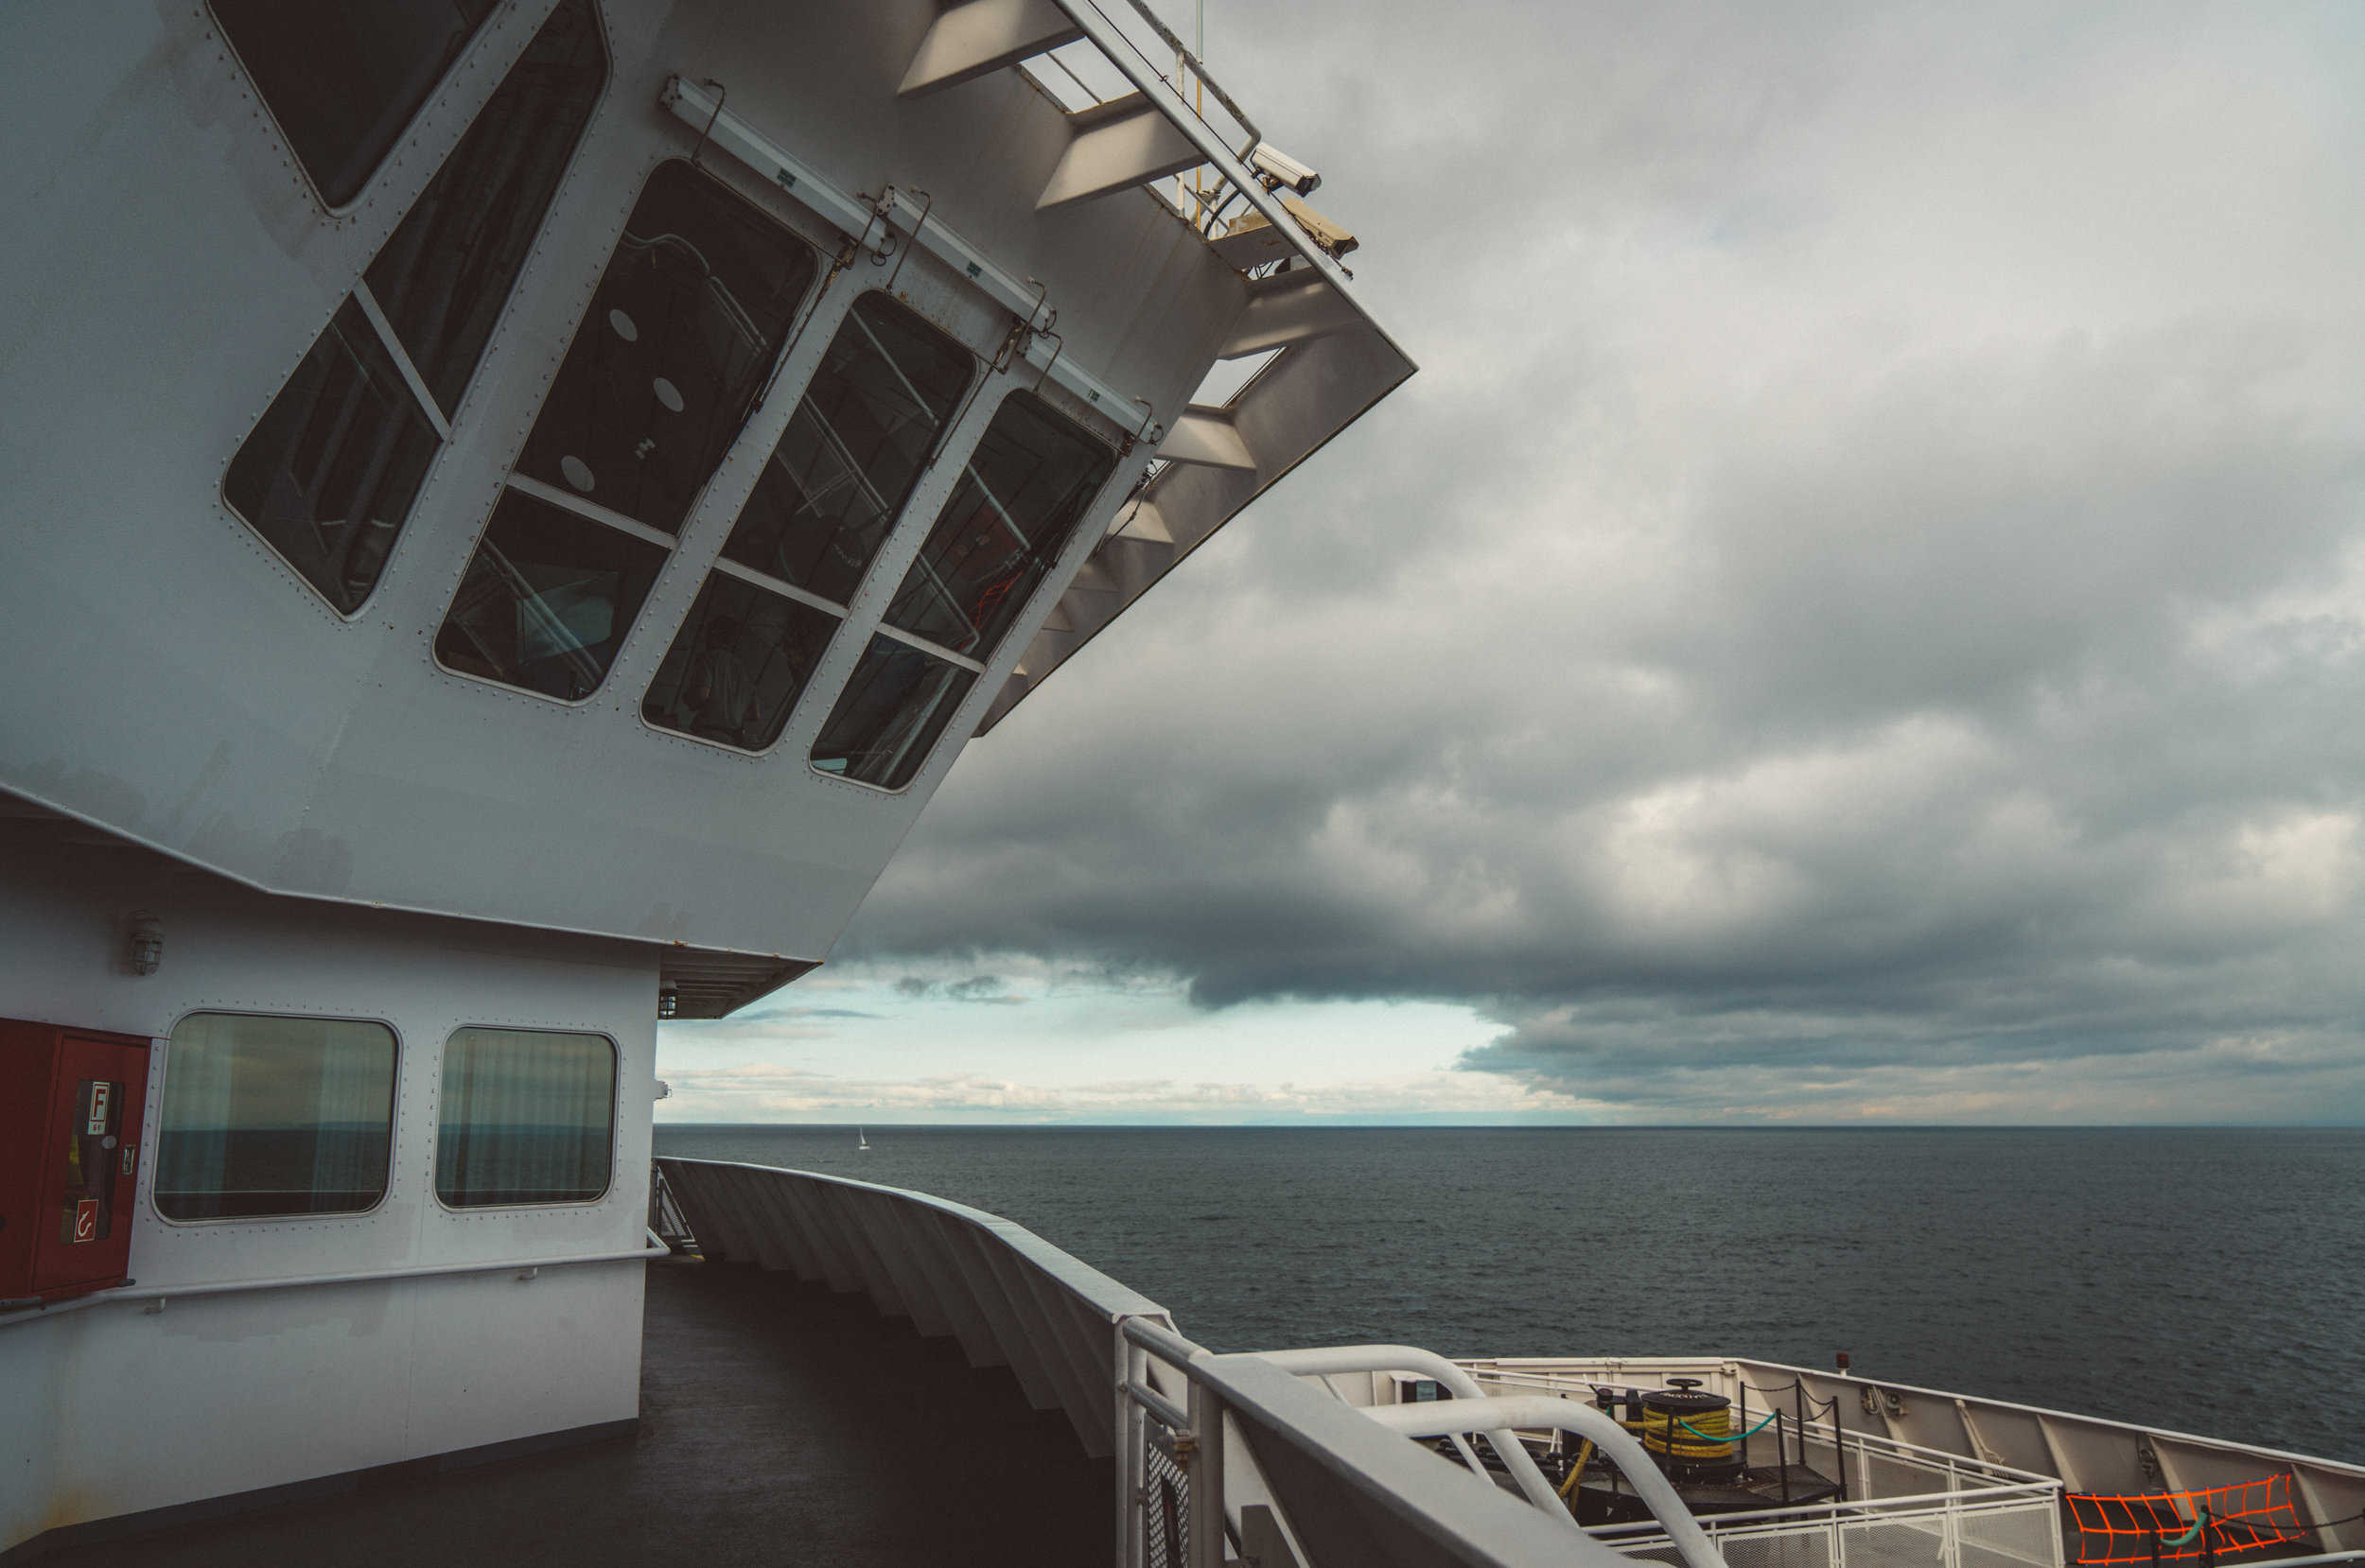 Was a bit of an bleak overcast day when we caught the BC Ferry over to Vancouver.